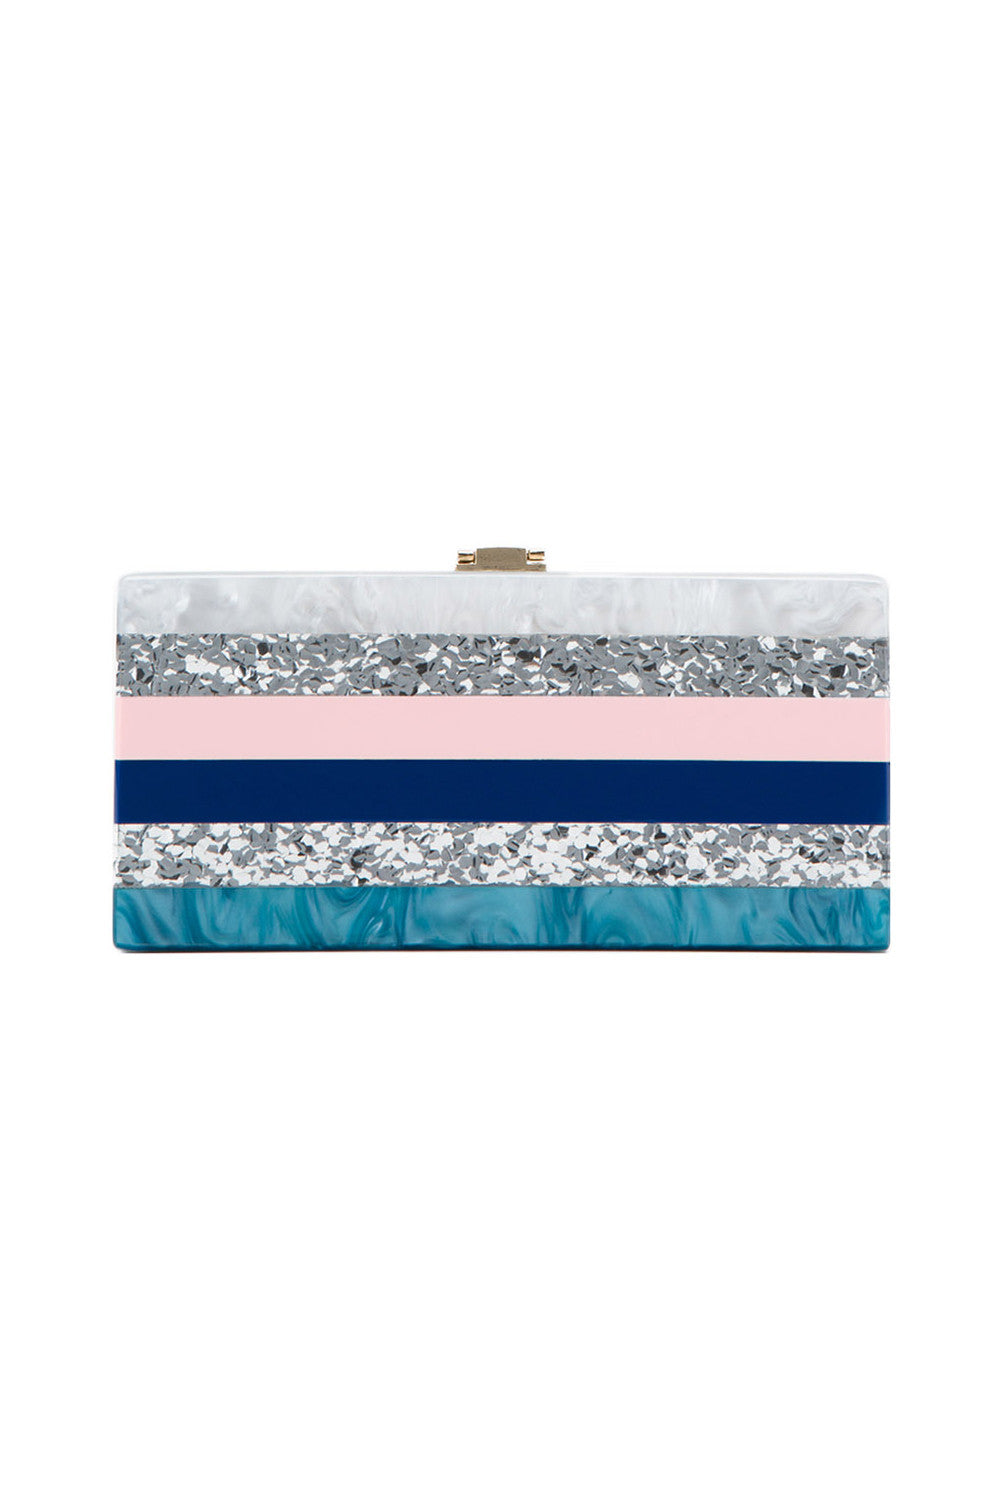 Milly Marble Clutch Multi | Quiwi House